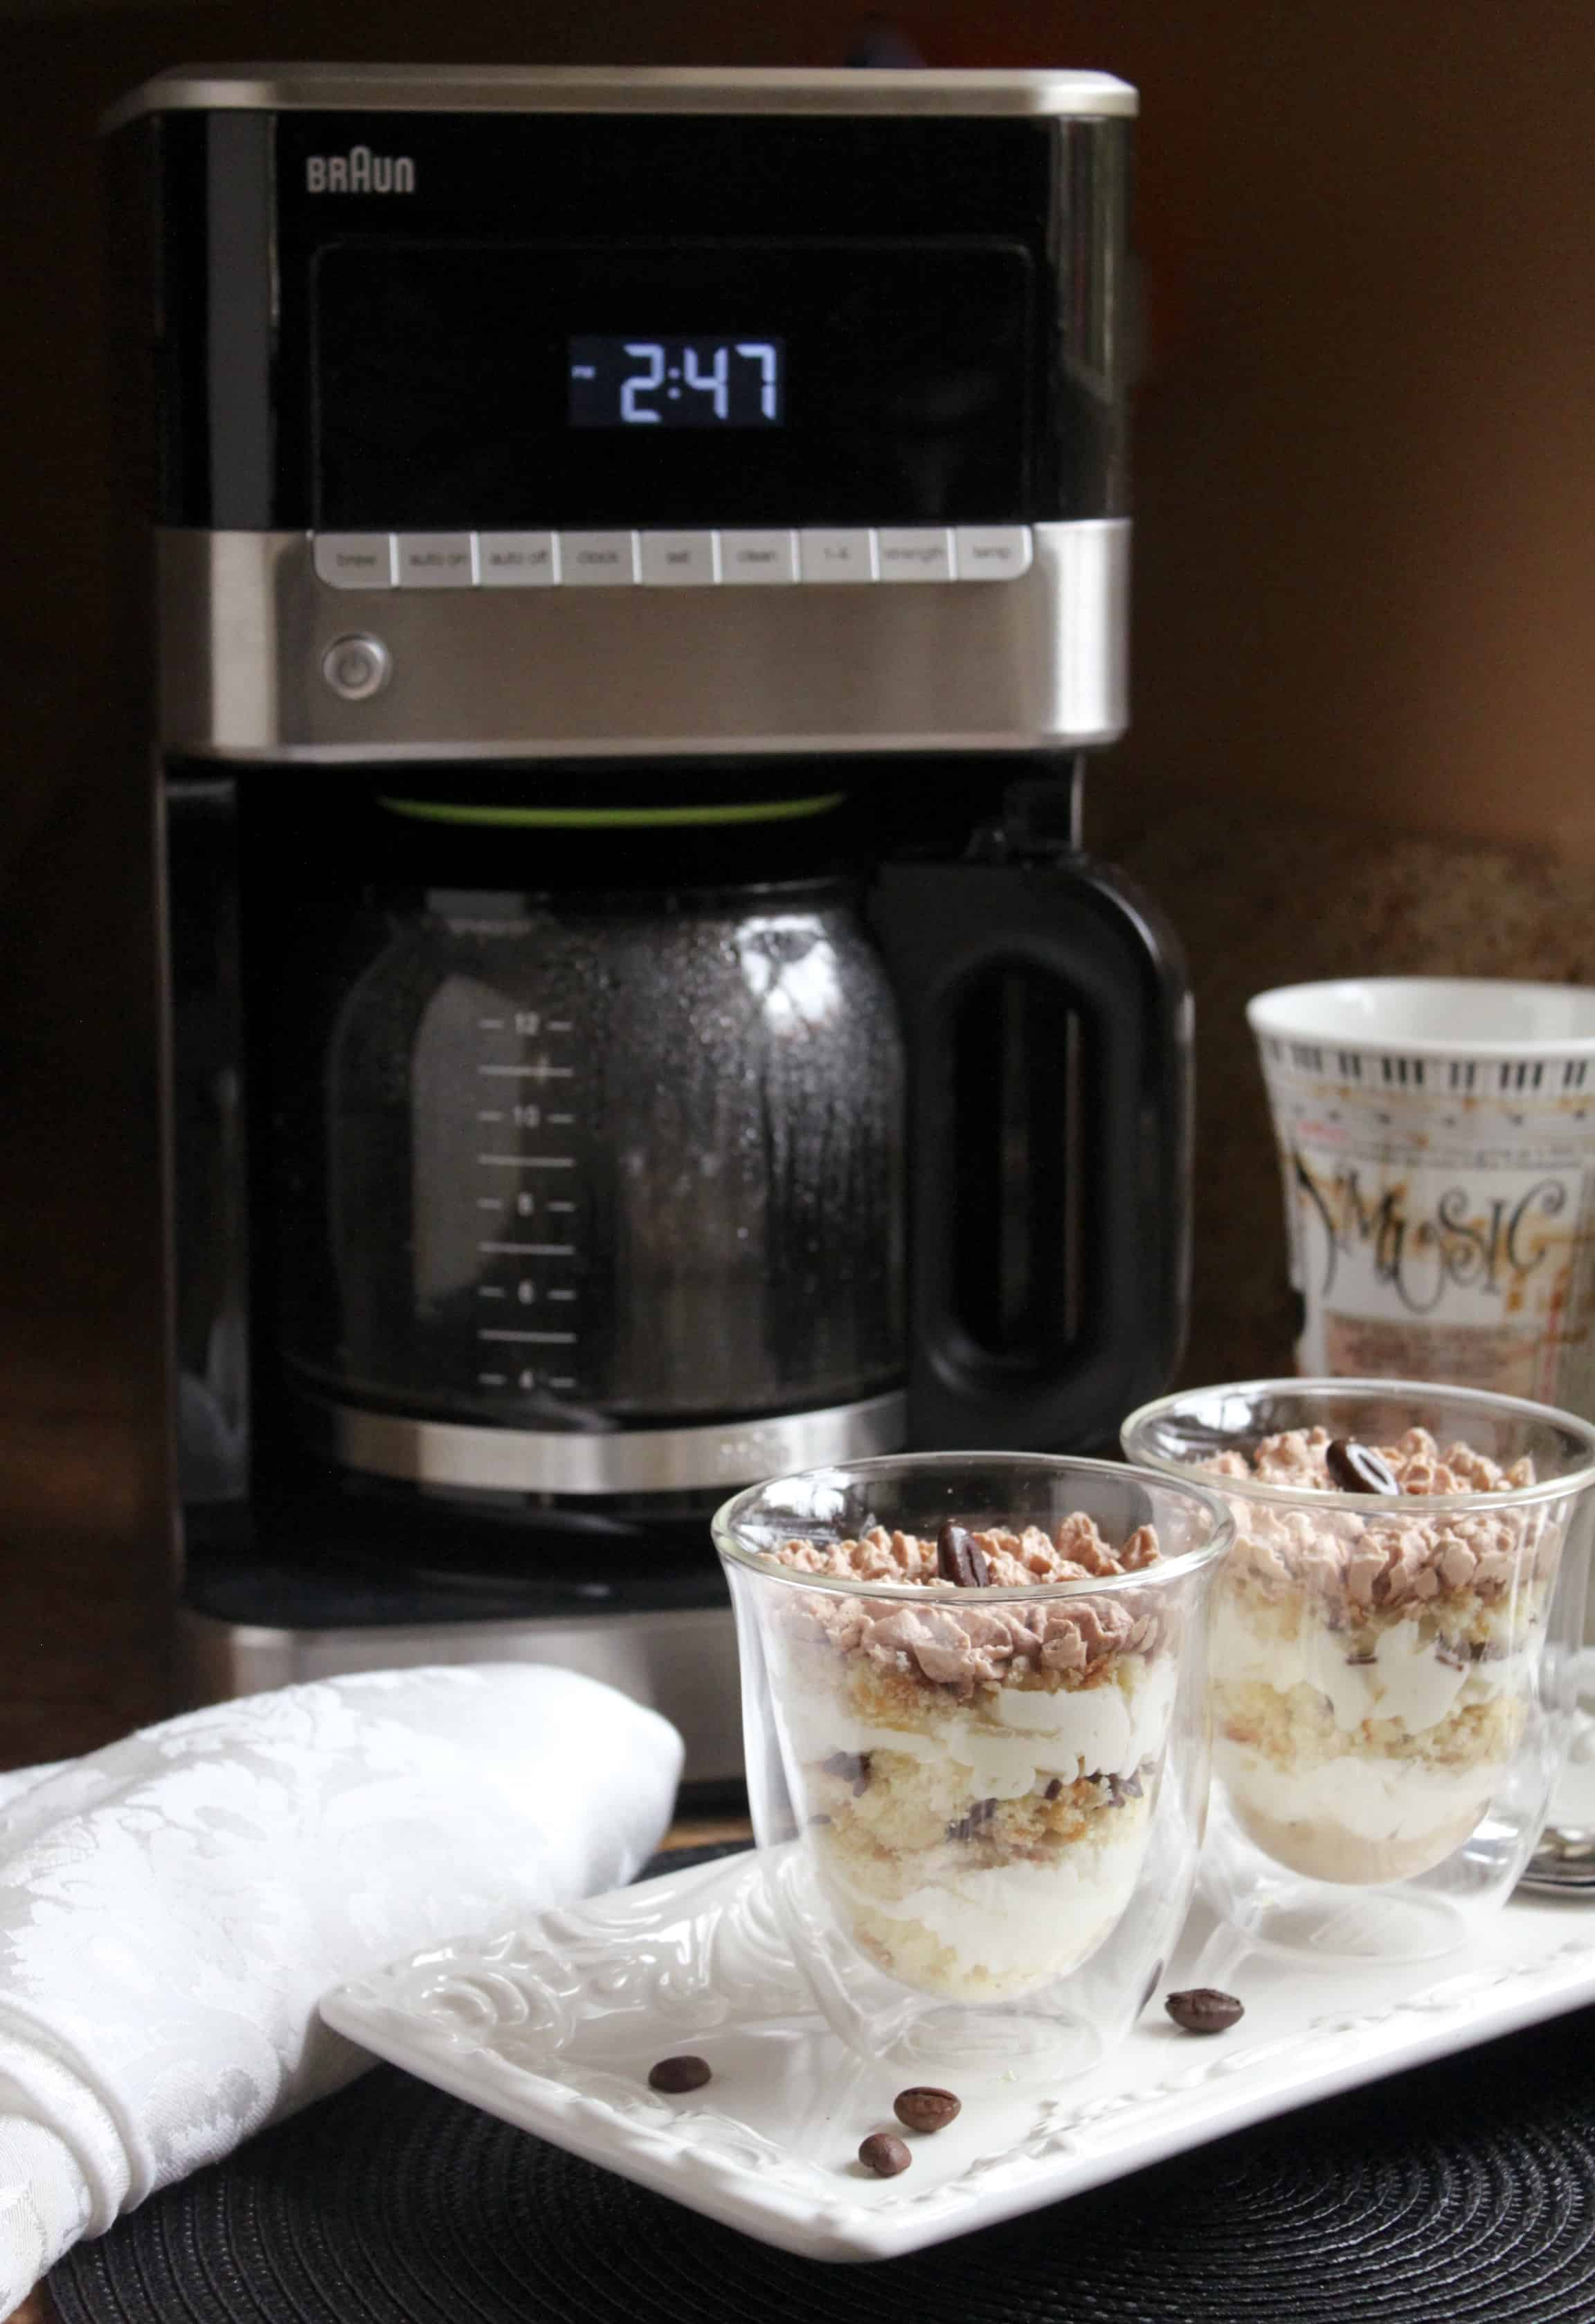 Braun BrewSense 12c Drip Coffee Maker with PureFlavor System with LCD Display